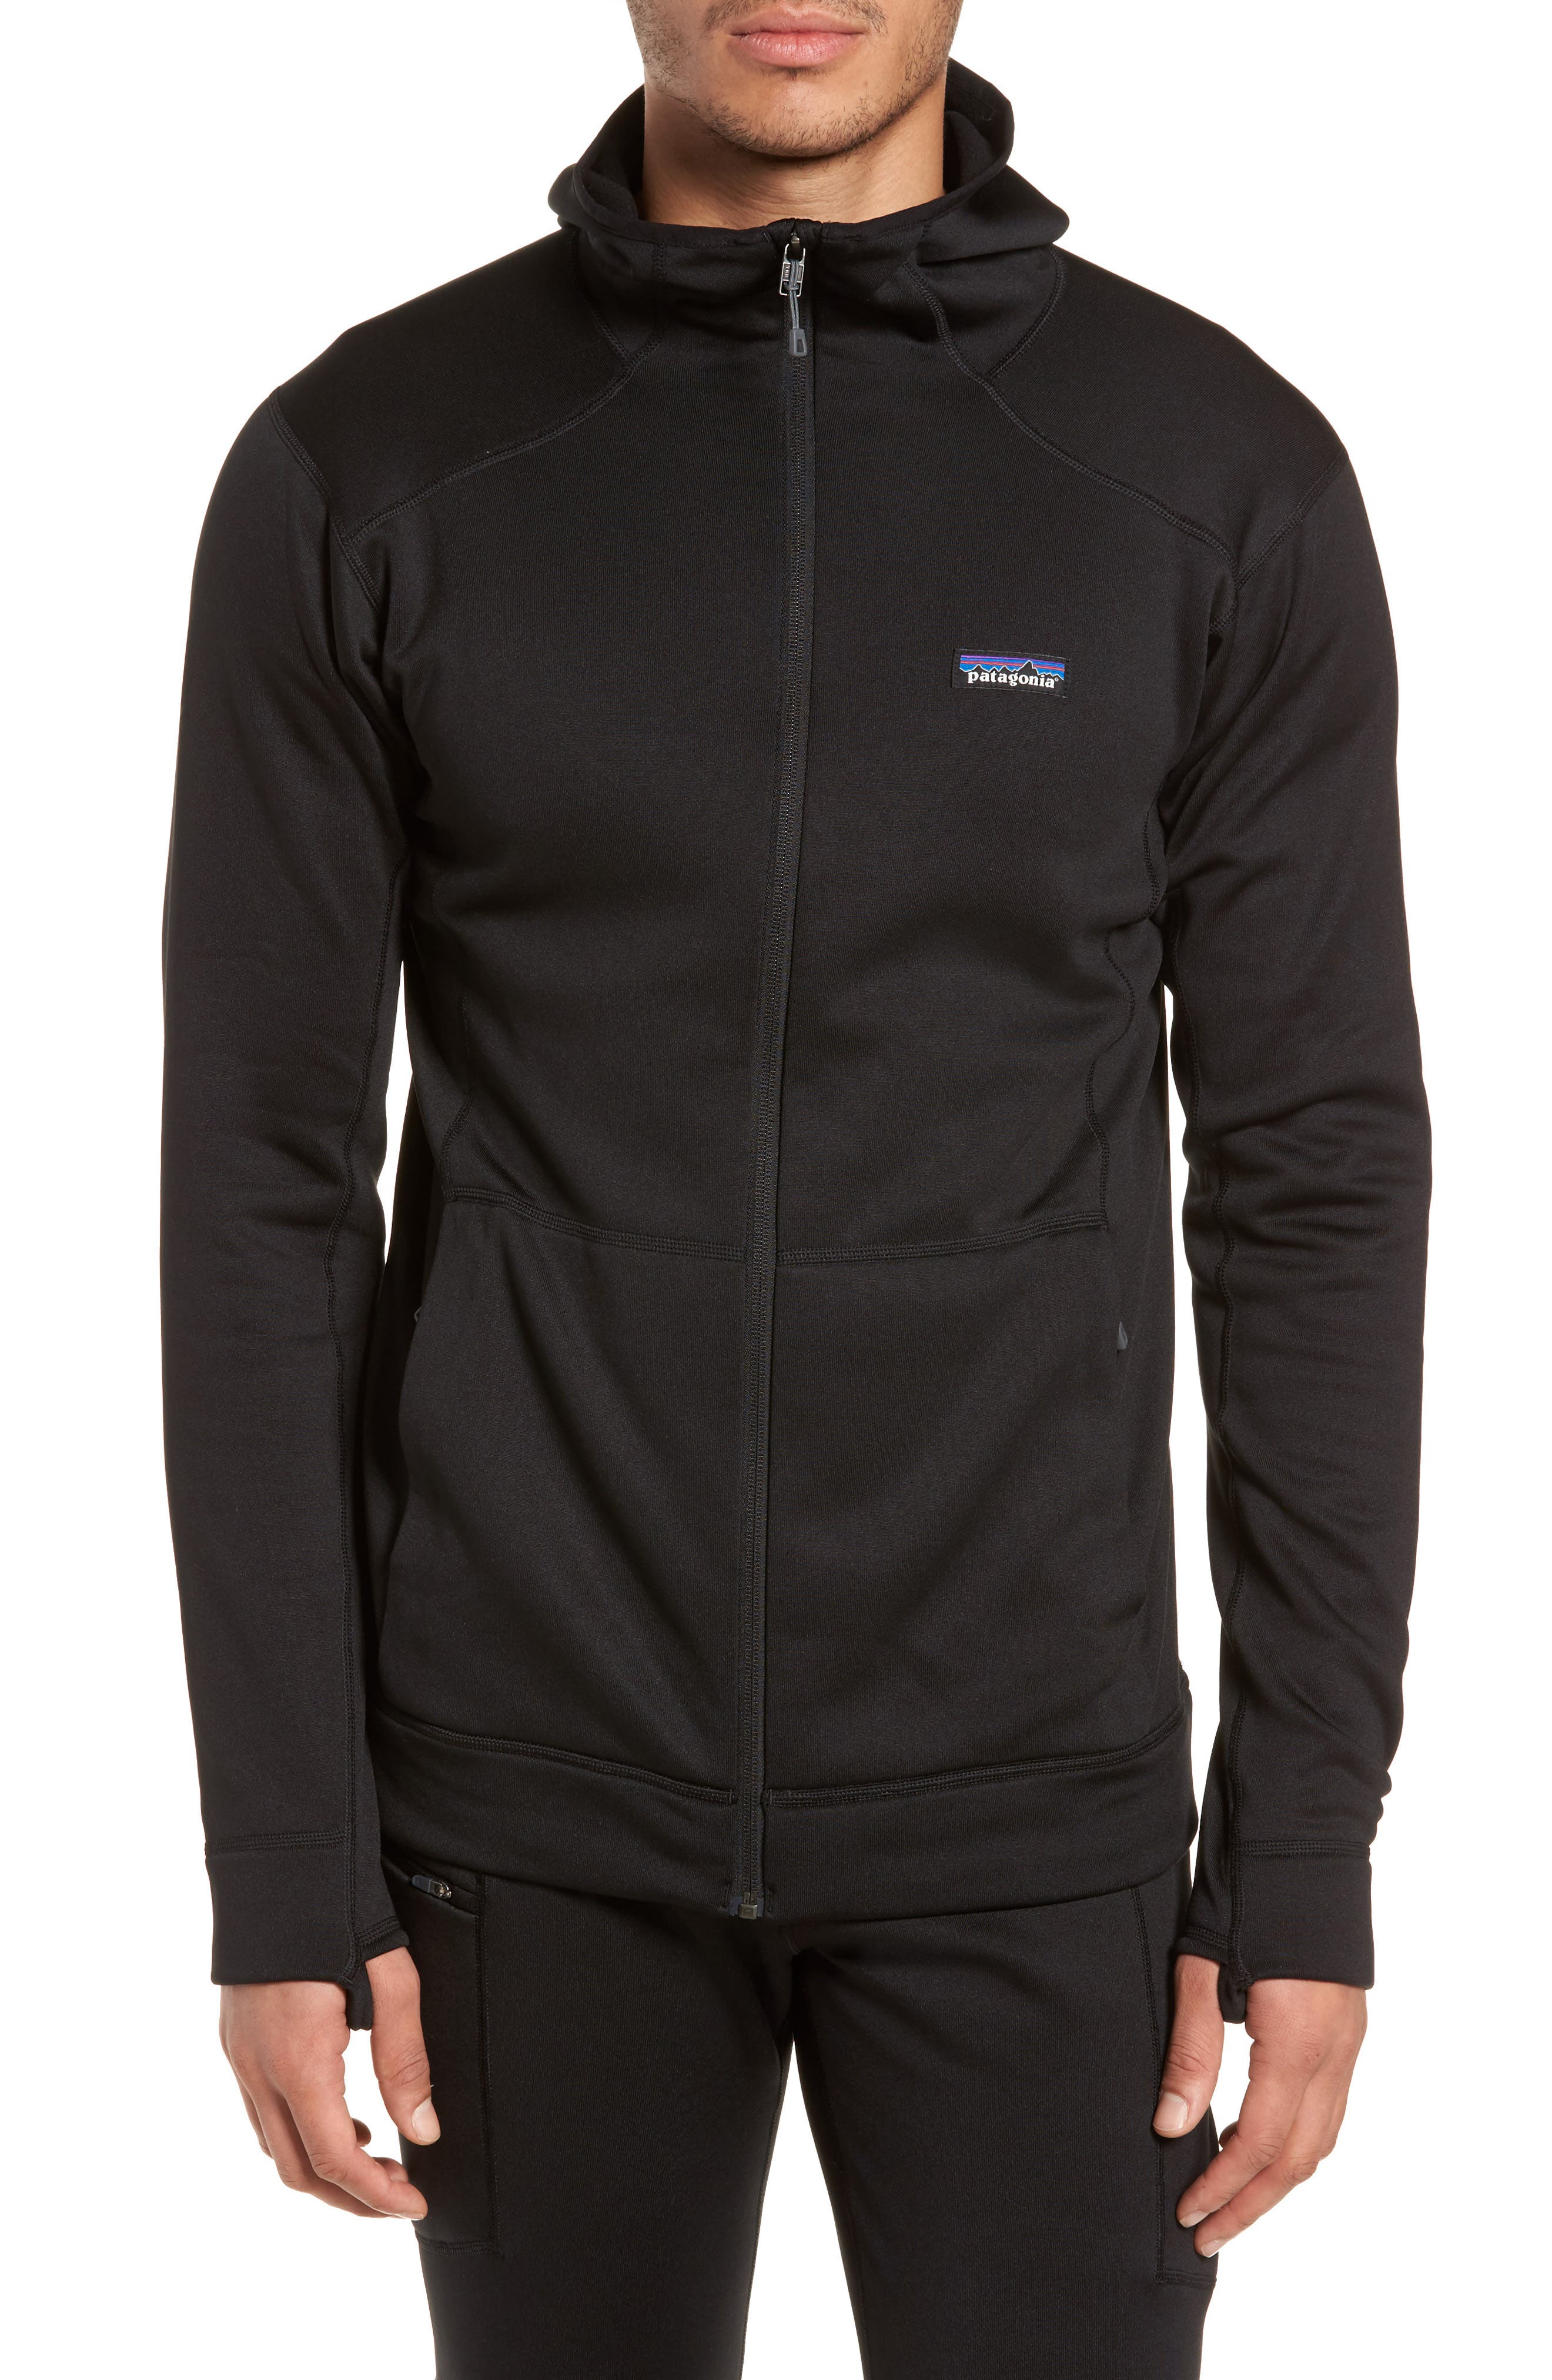 M's Crosstrek Zip Hoodie,                             Alternate thumbnail 4, color,                             Black